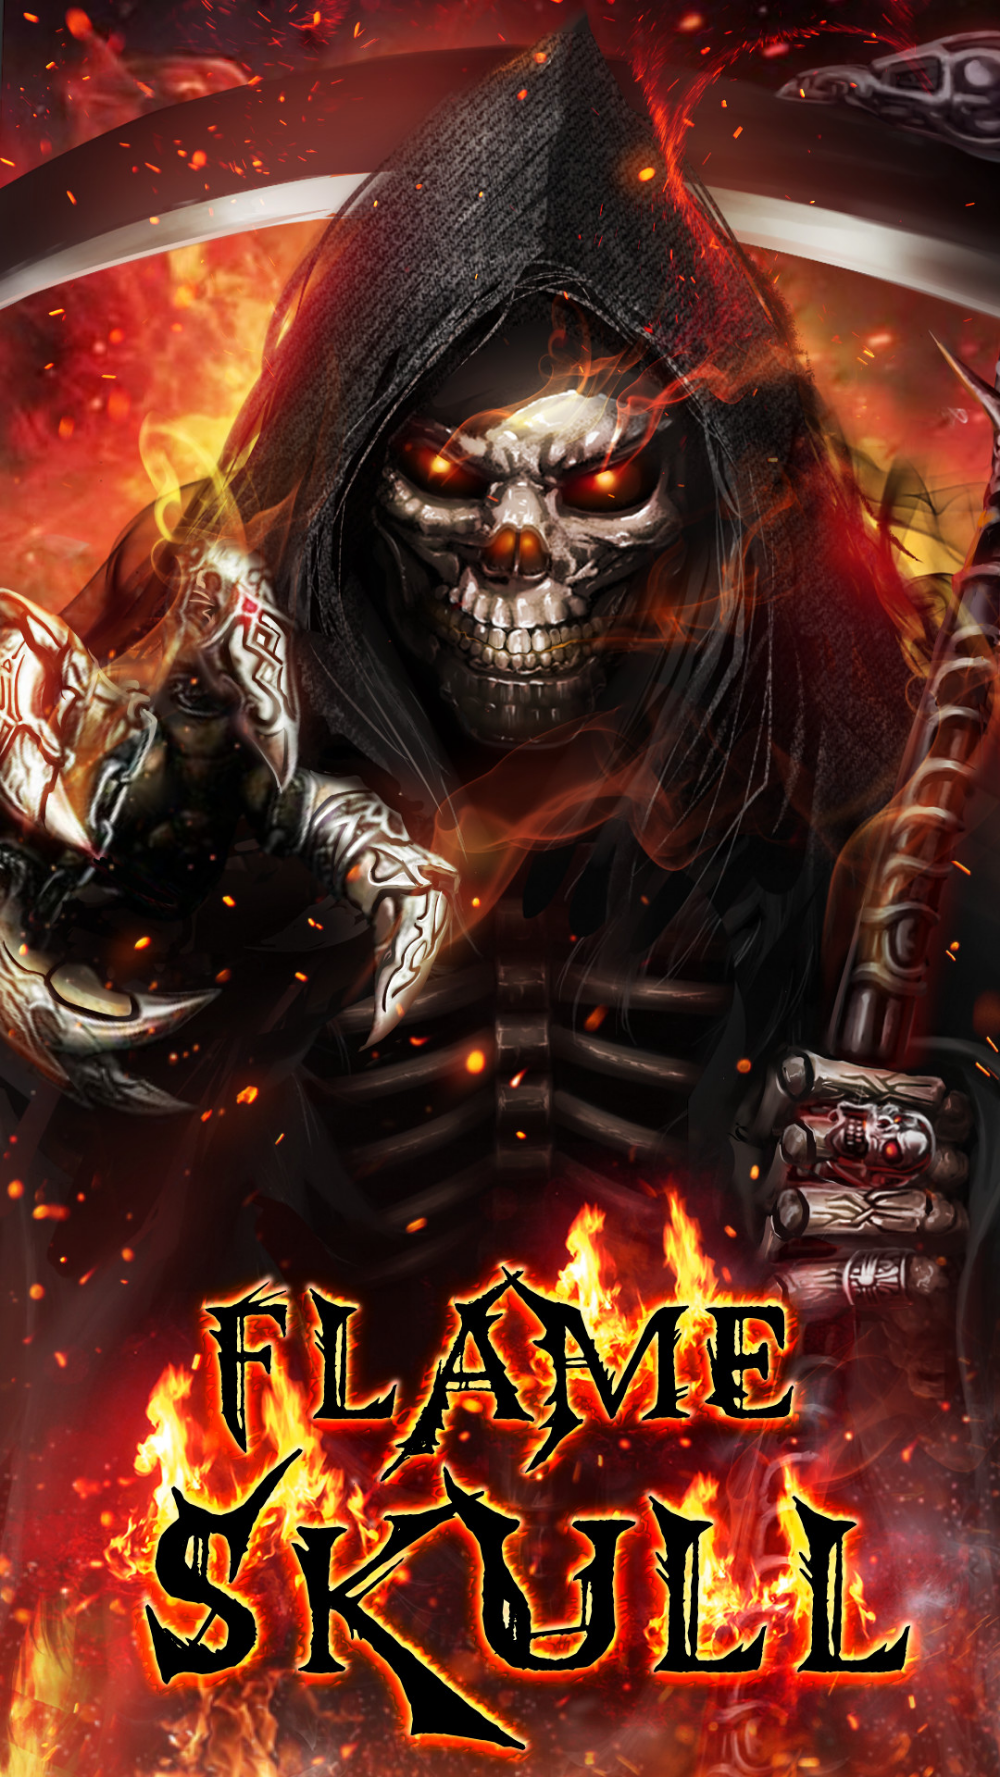 63 Flaming Skull Wallpapers On Wallpaperplay Skull Wallpaper Hd Skull Wallpapers Skull Pictures